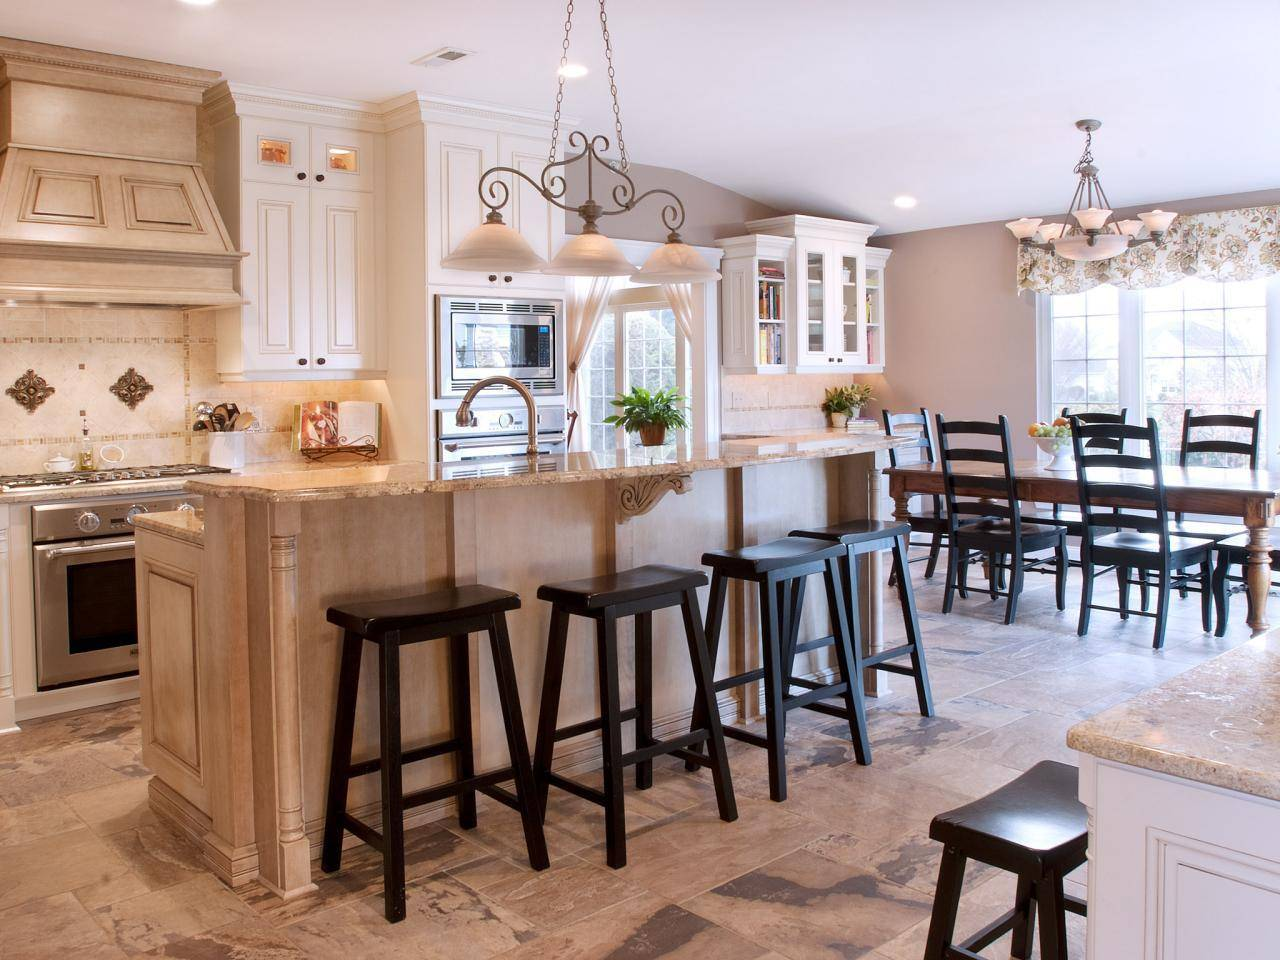 Living Room Dining Kitchen Combo Ideas House Plans 137851